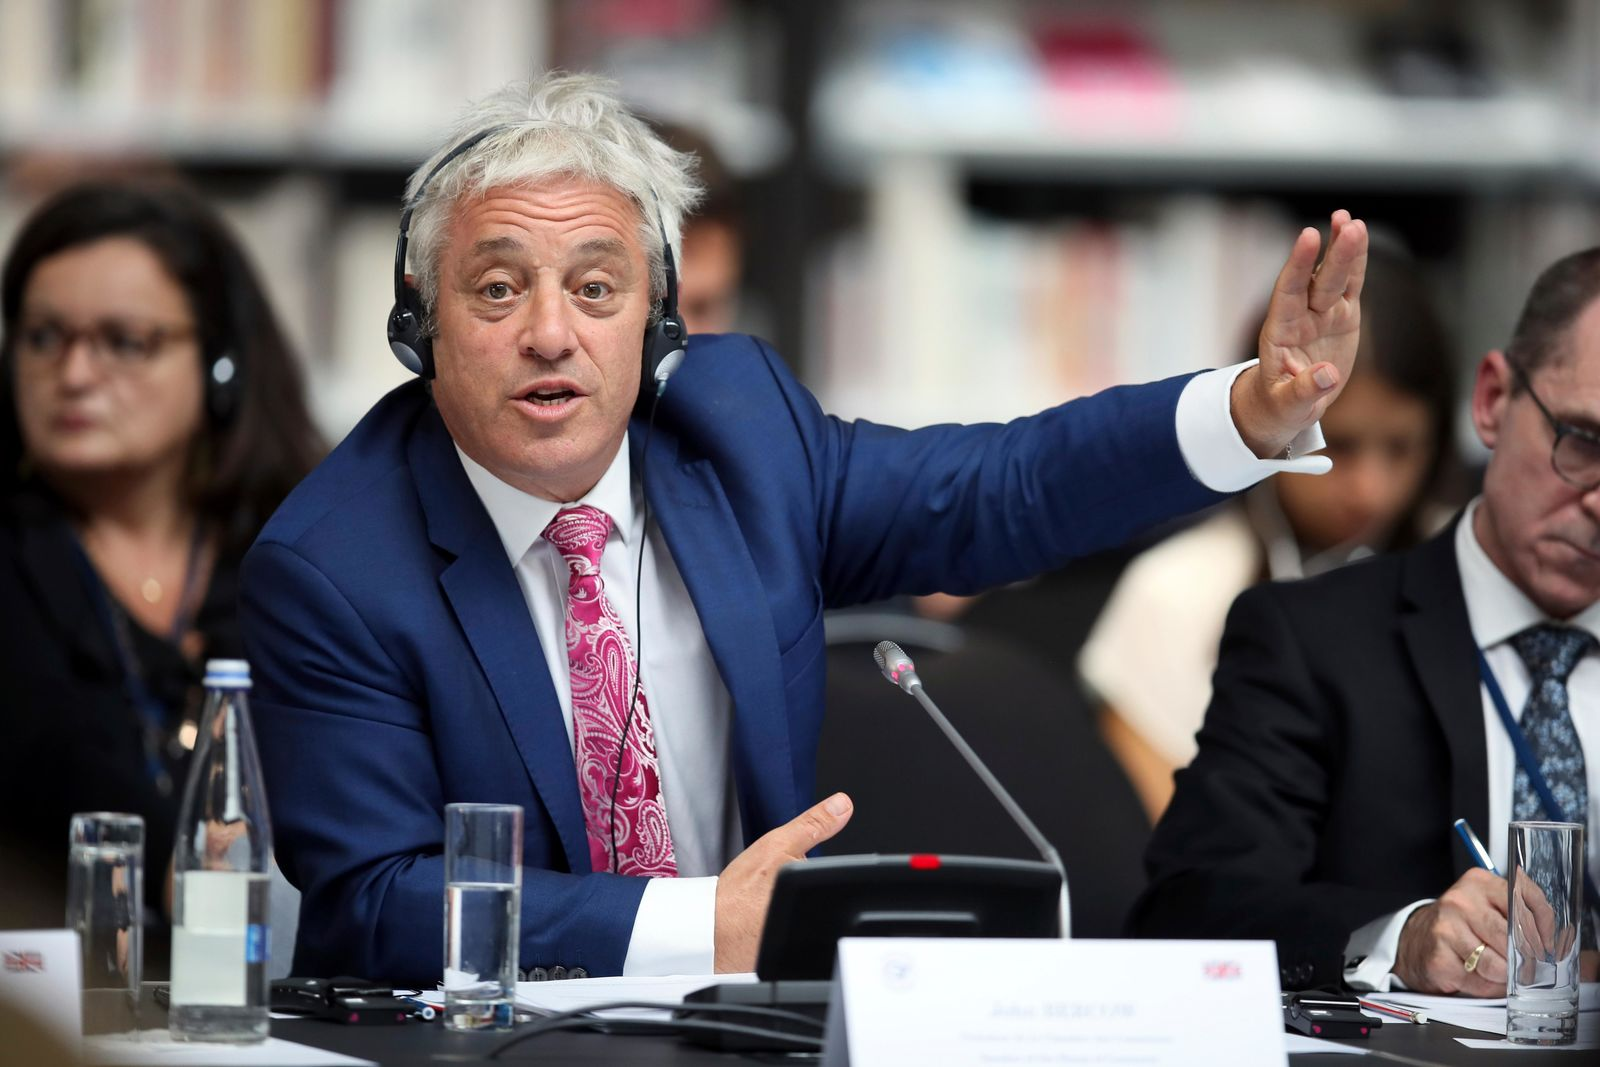 FILE - In this Friday, Sept. 6, 2019 file photo, Speaker of the House of Commons John Bercow gestures during a meeting at the G7 parliaments summit, in Brest, western France. A colorful era in British parliamentary history is coming to a close with Speaker of the House John Bercow's abrupt announcement Monday, Sept. 9, 2019 that he will leave his influential post by the end of October. (AP Photo/David Vincent, file)